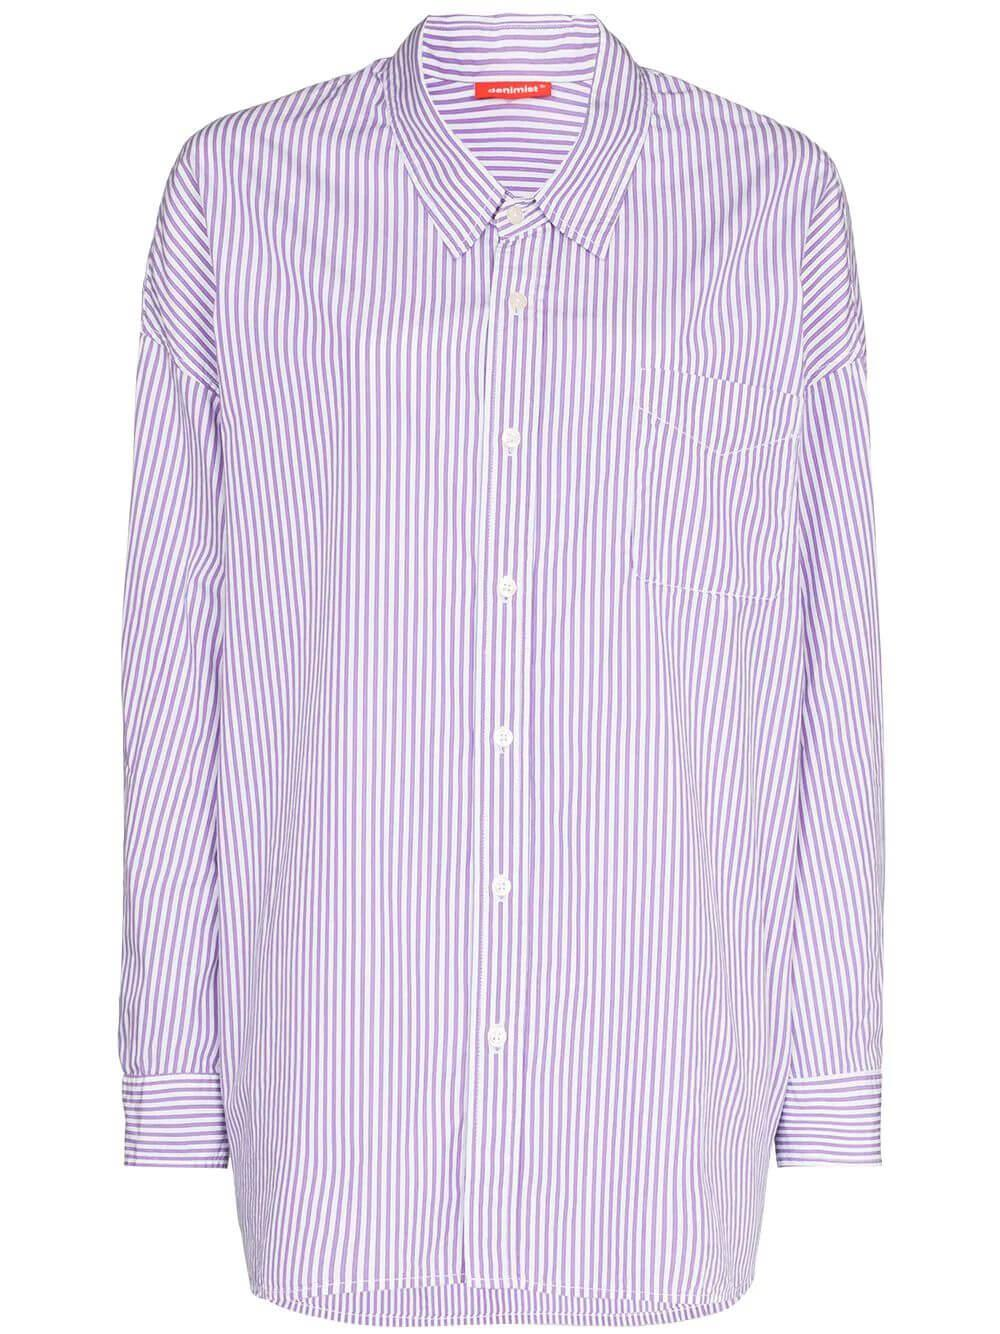 Striped Button Front Shirt Item # DSW4230-696